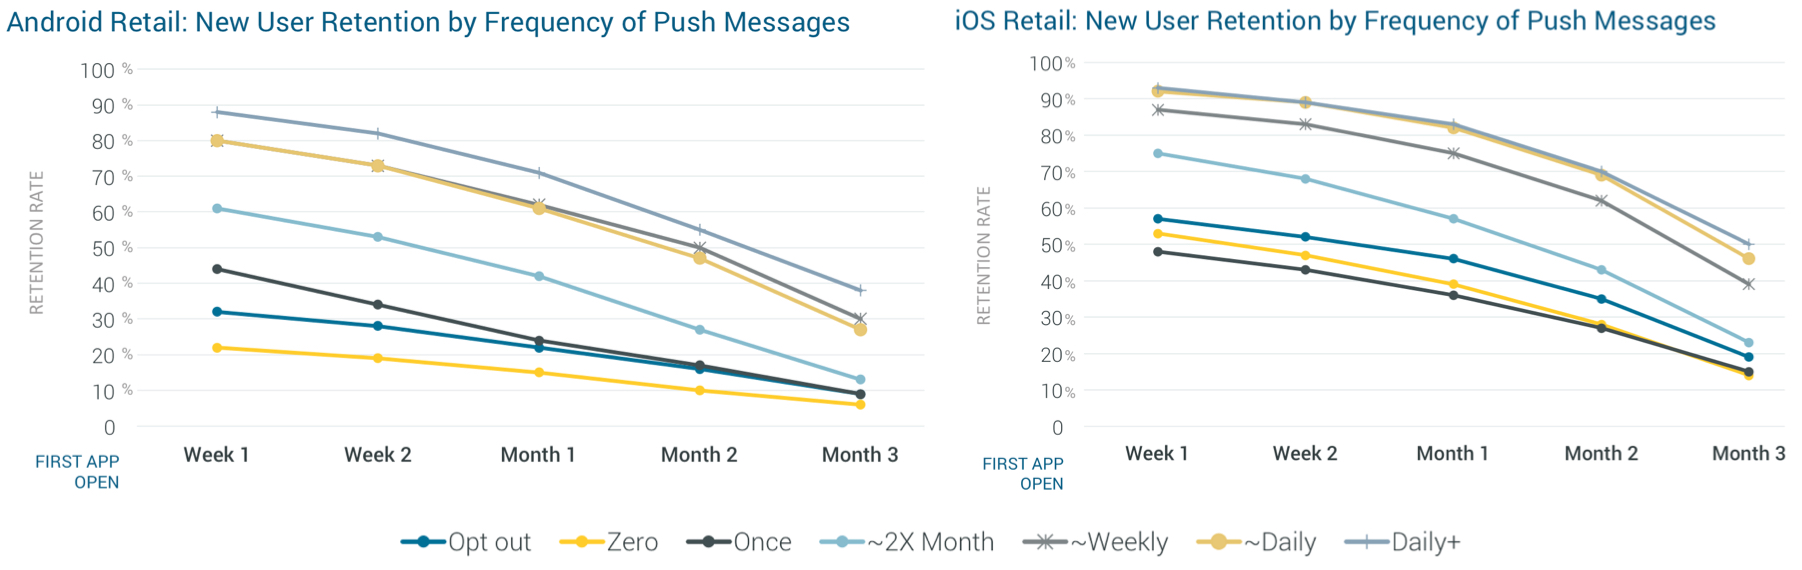 New User Retention by Frequency of Push Messages (Android and iOS)